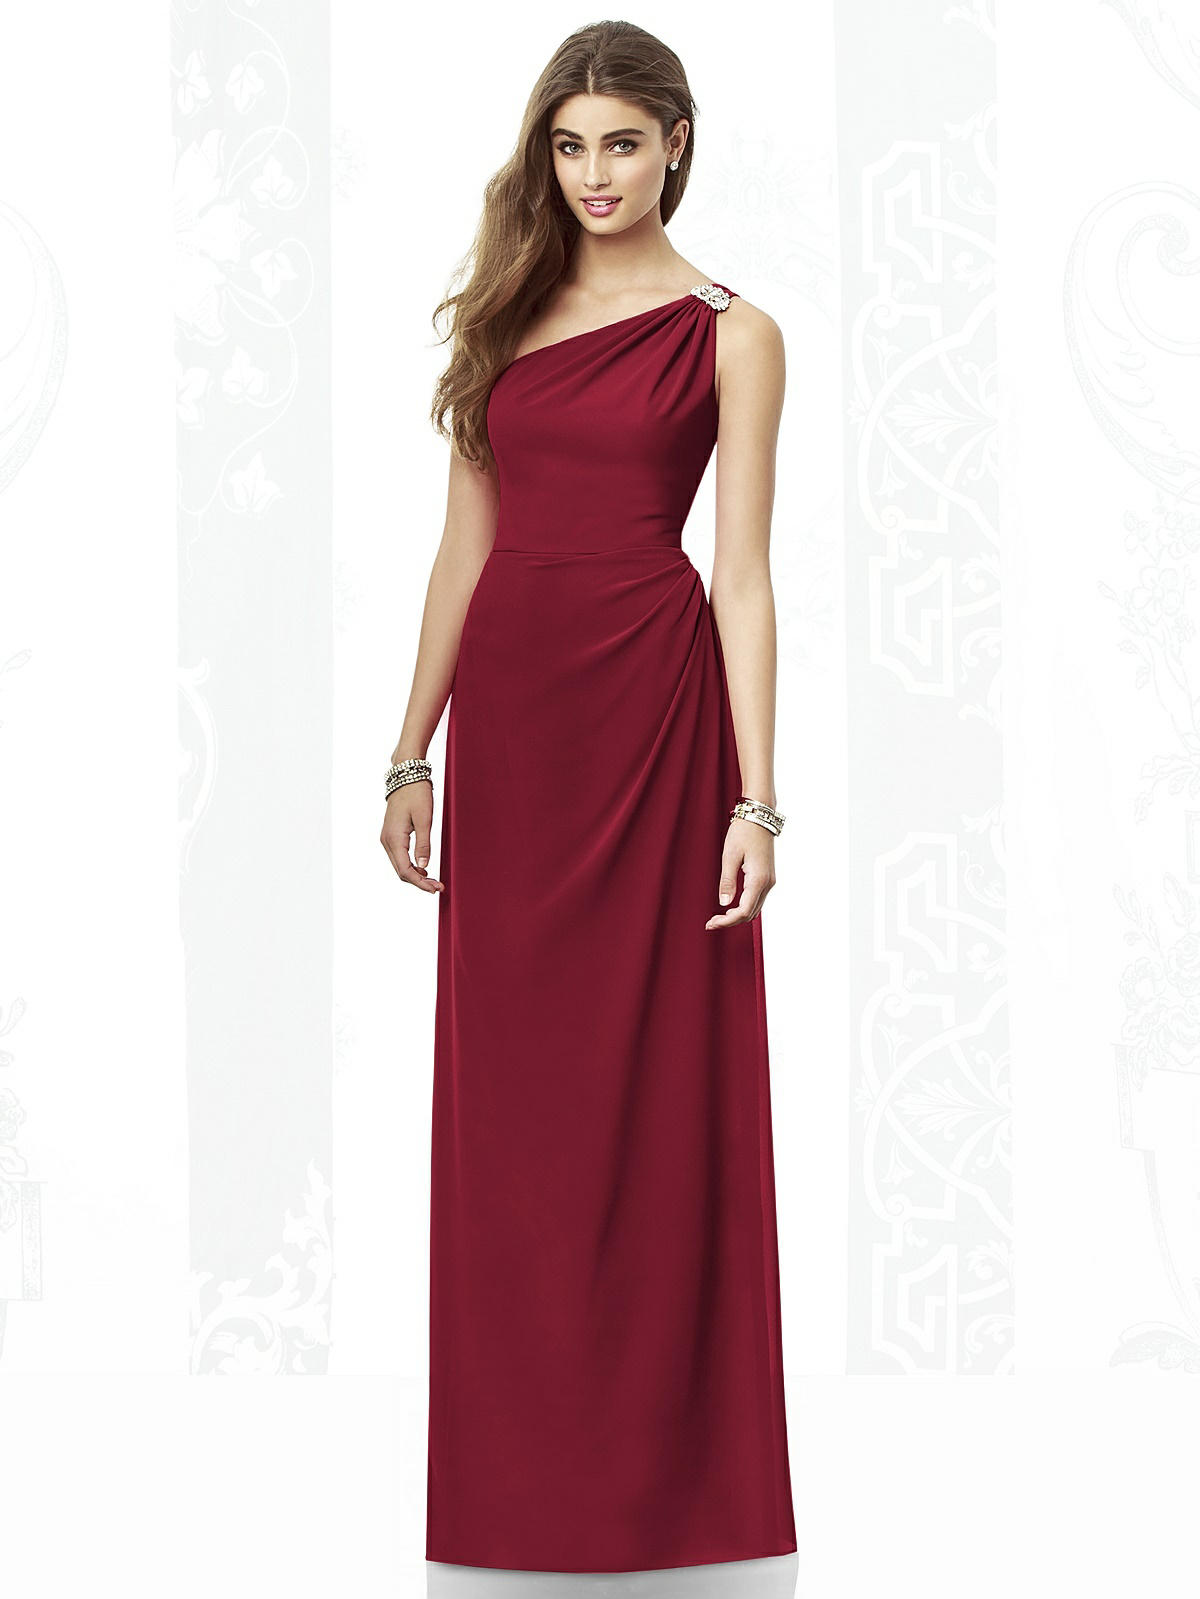 Dessy group bridesmaid dresses size chart dessy group bridesmaid dresses size chart 84 ombrellifo Images